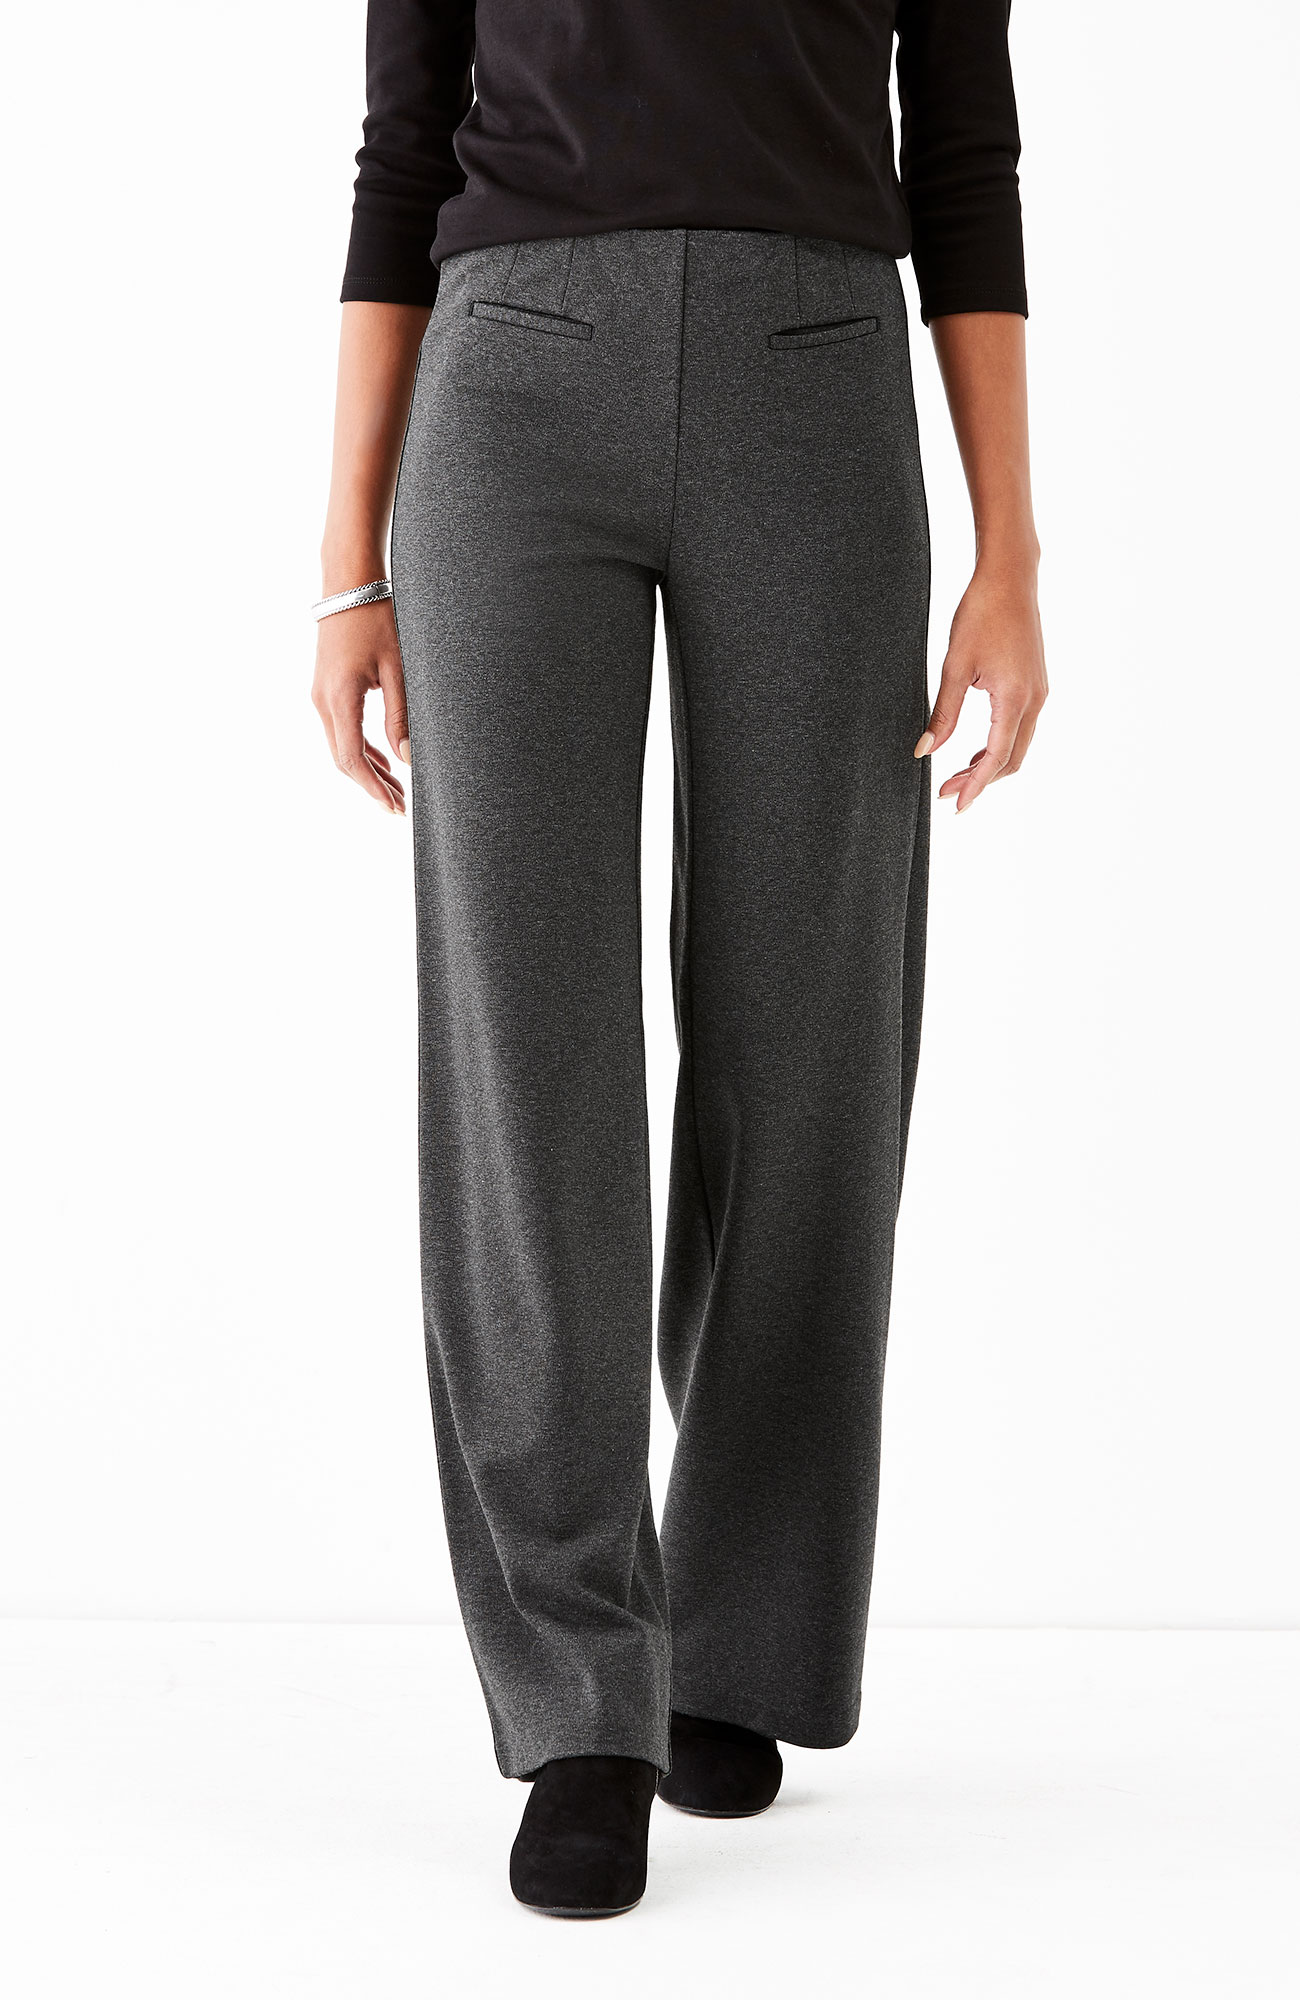 ponte knit full-leg pants